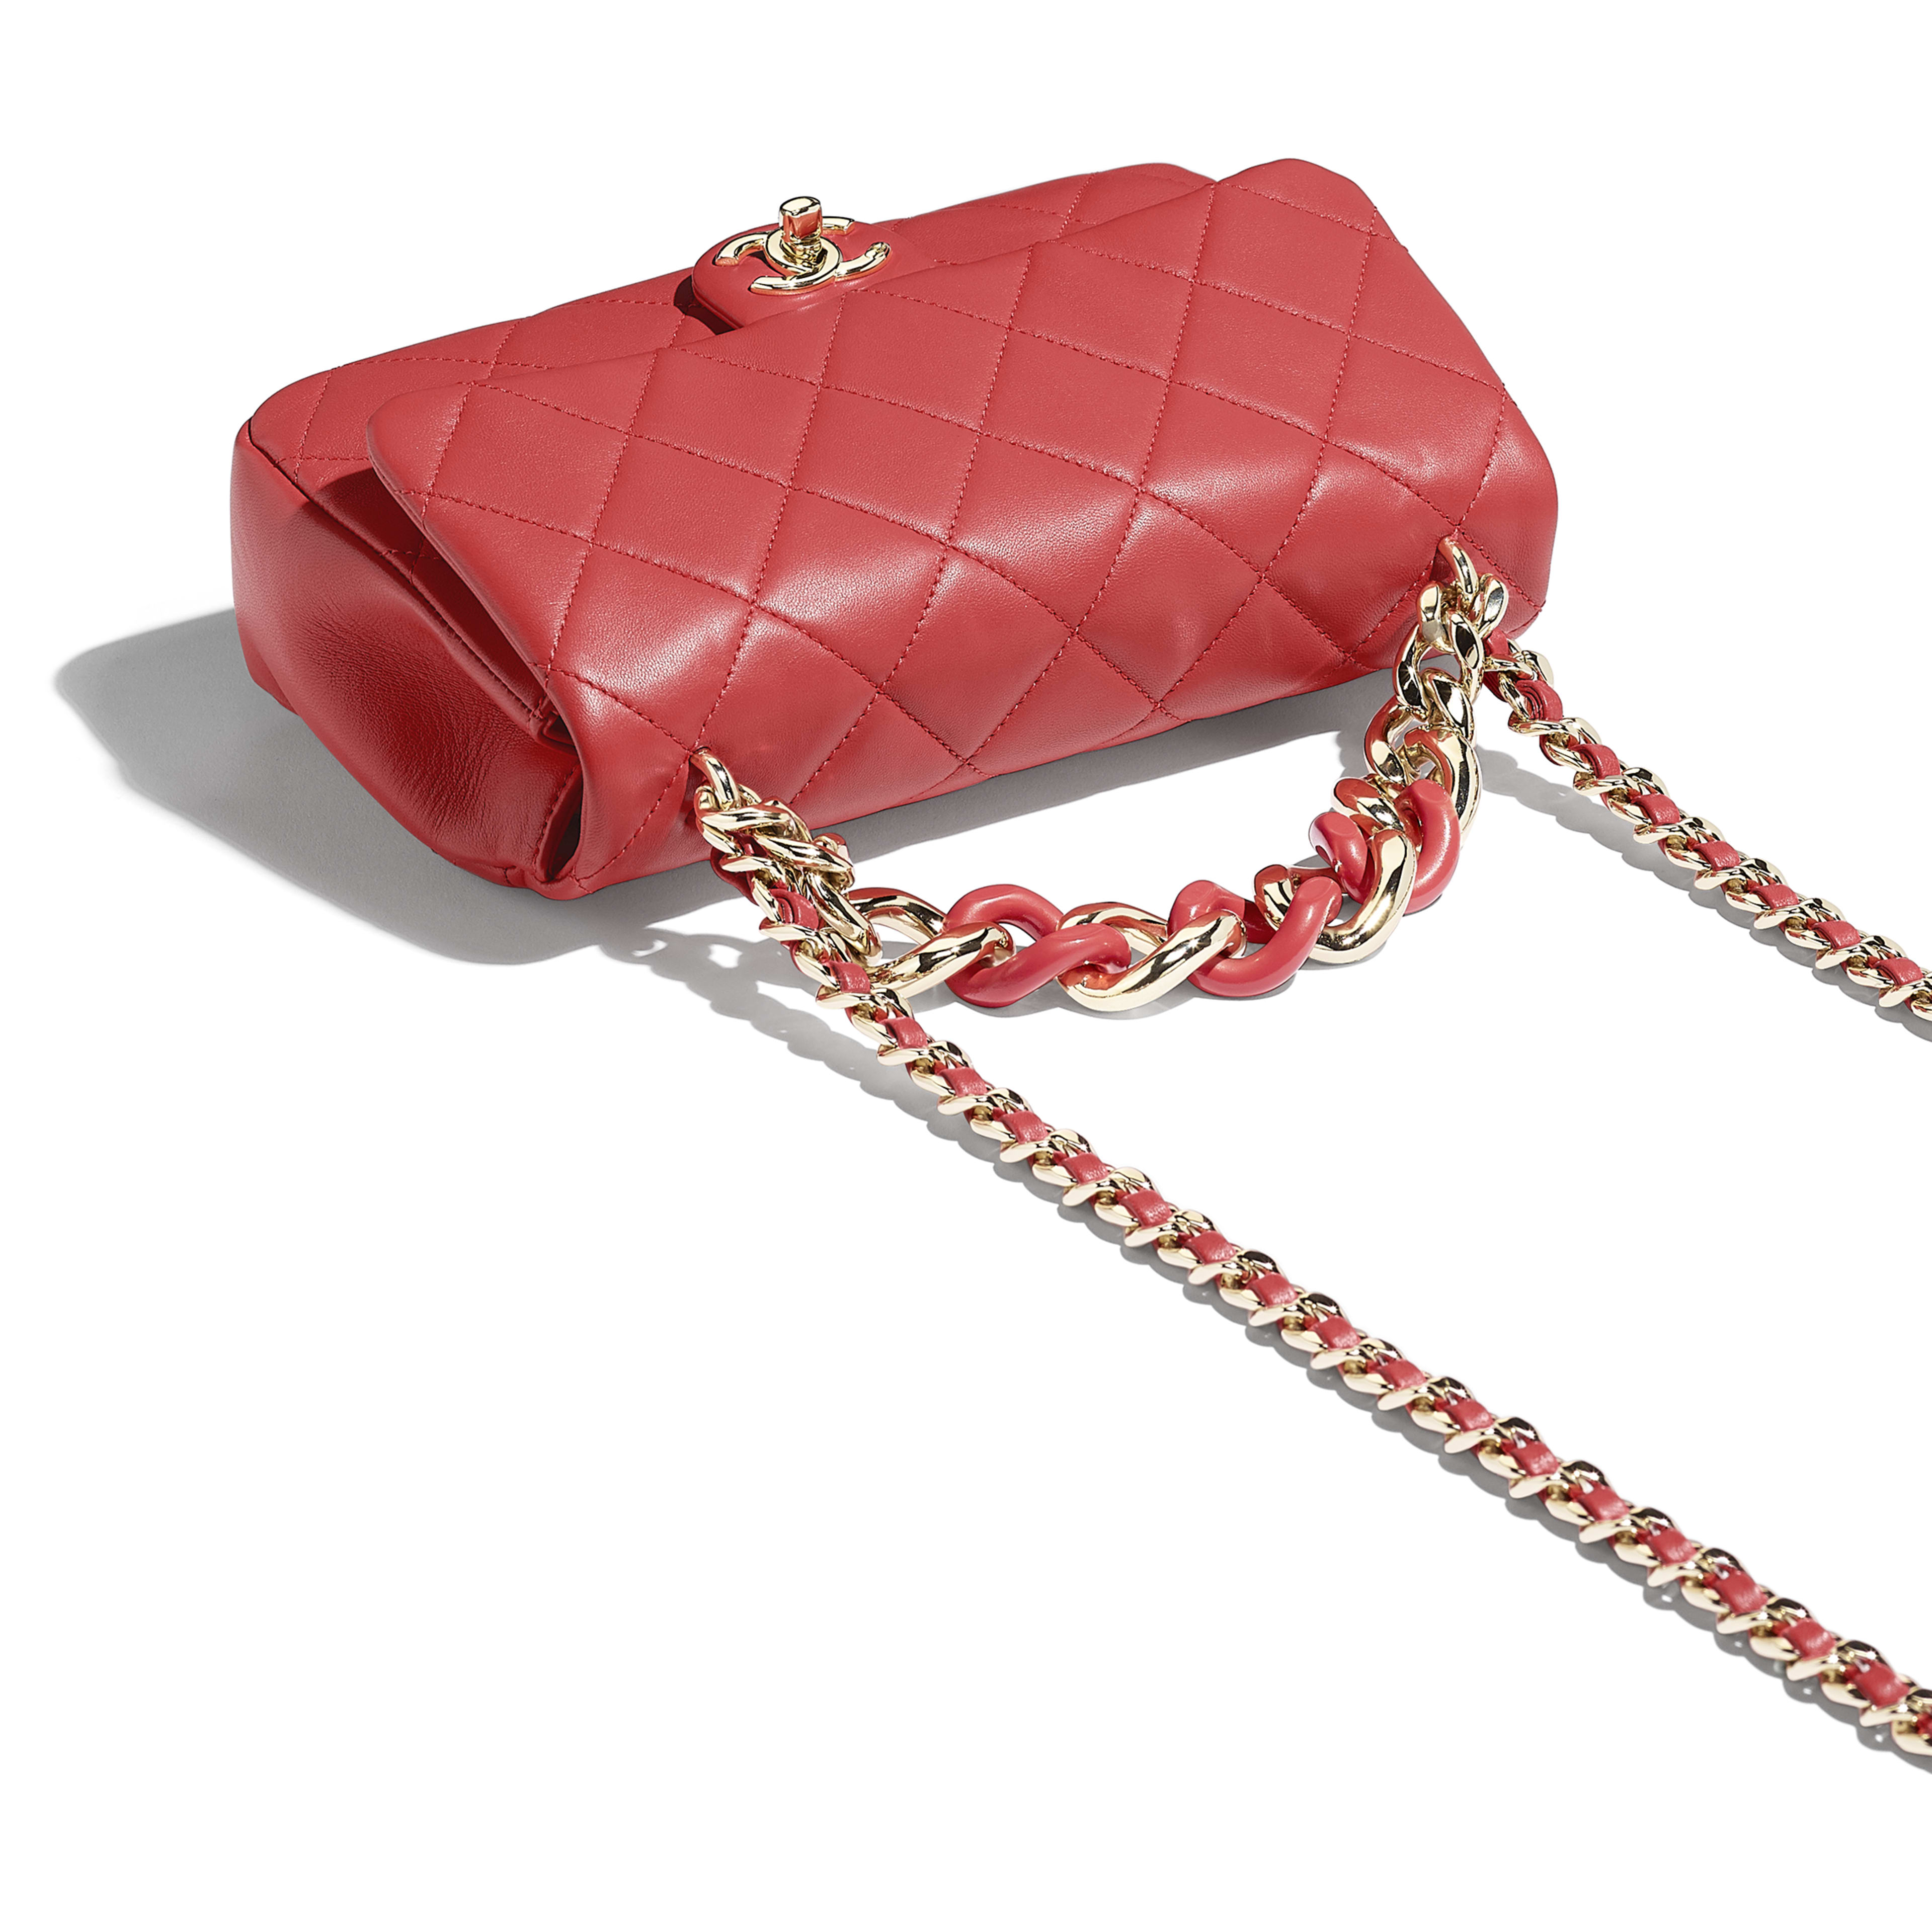 Flap Bag - Red - Lambskin, Resin & Gold-Tone Metal - Extra view - see full sized version